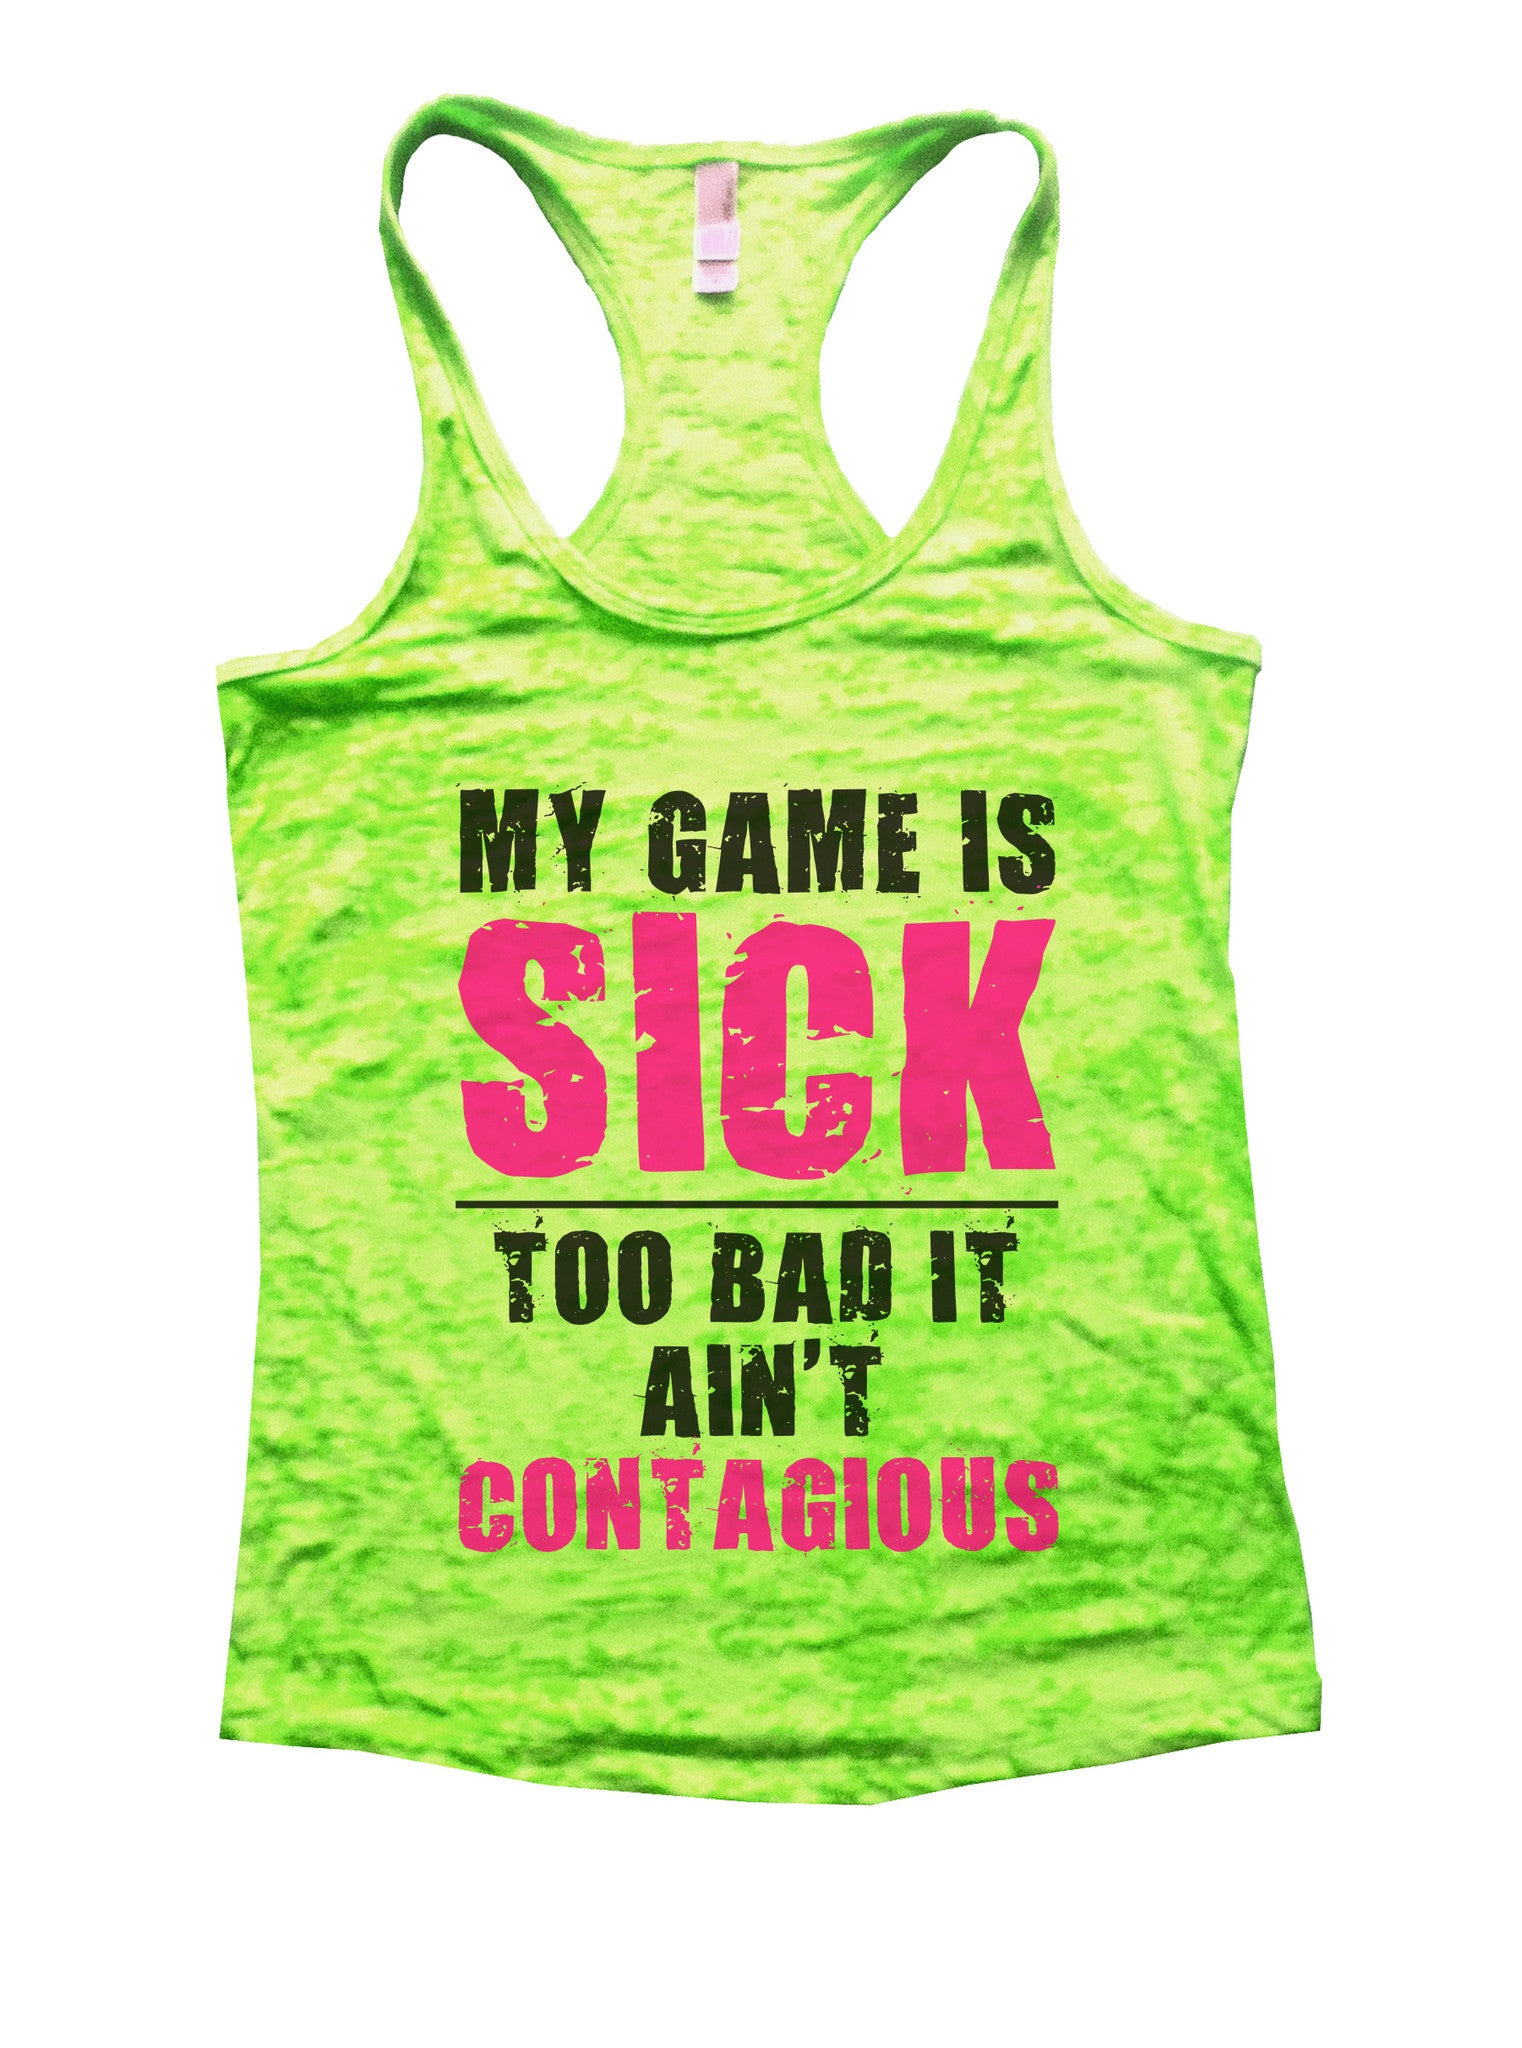 My Game Is Sick Too Bad It Aint Contagious Basketball Shirt - Womens Burnout Tank Top - Funny Shirts Tank Tops Burnouts and Triblends  - 1